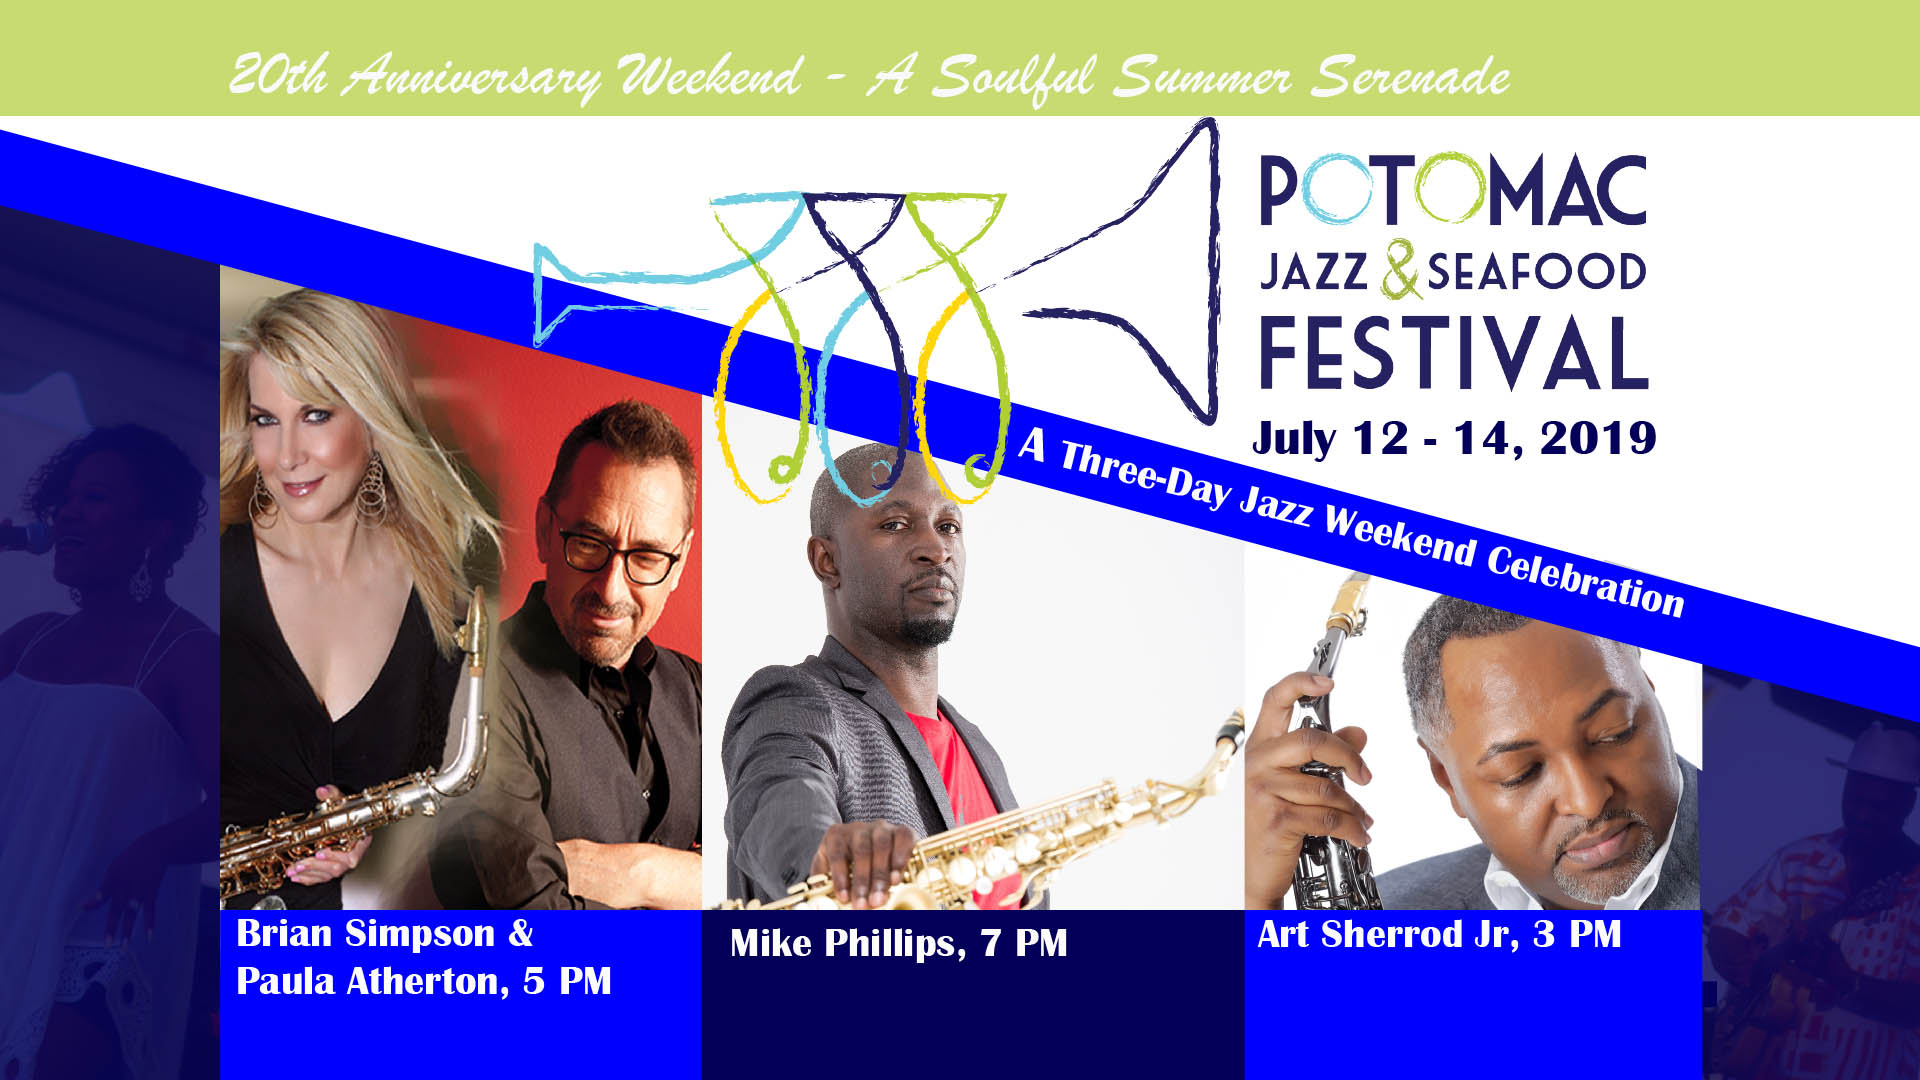 20th Potomac Jazz & Seafood Festival